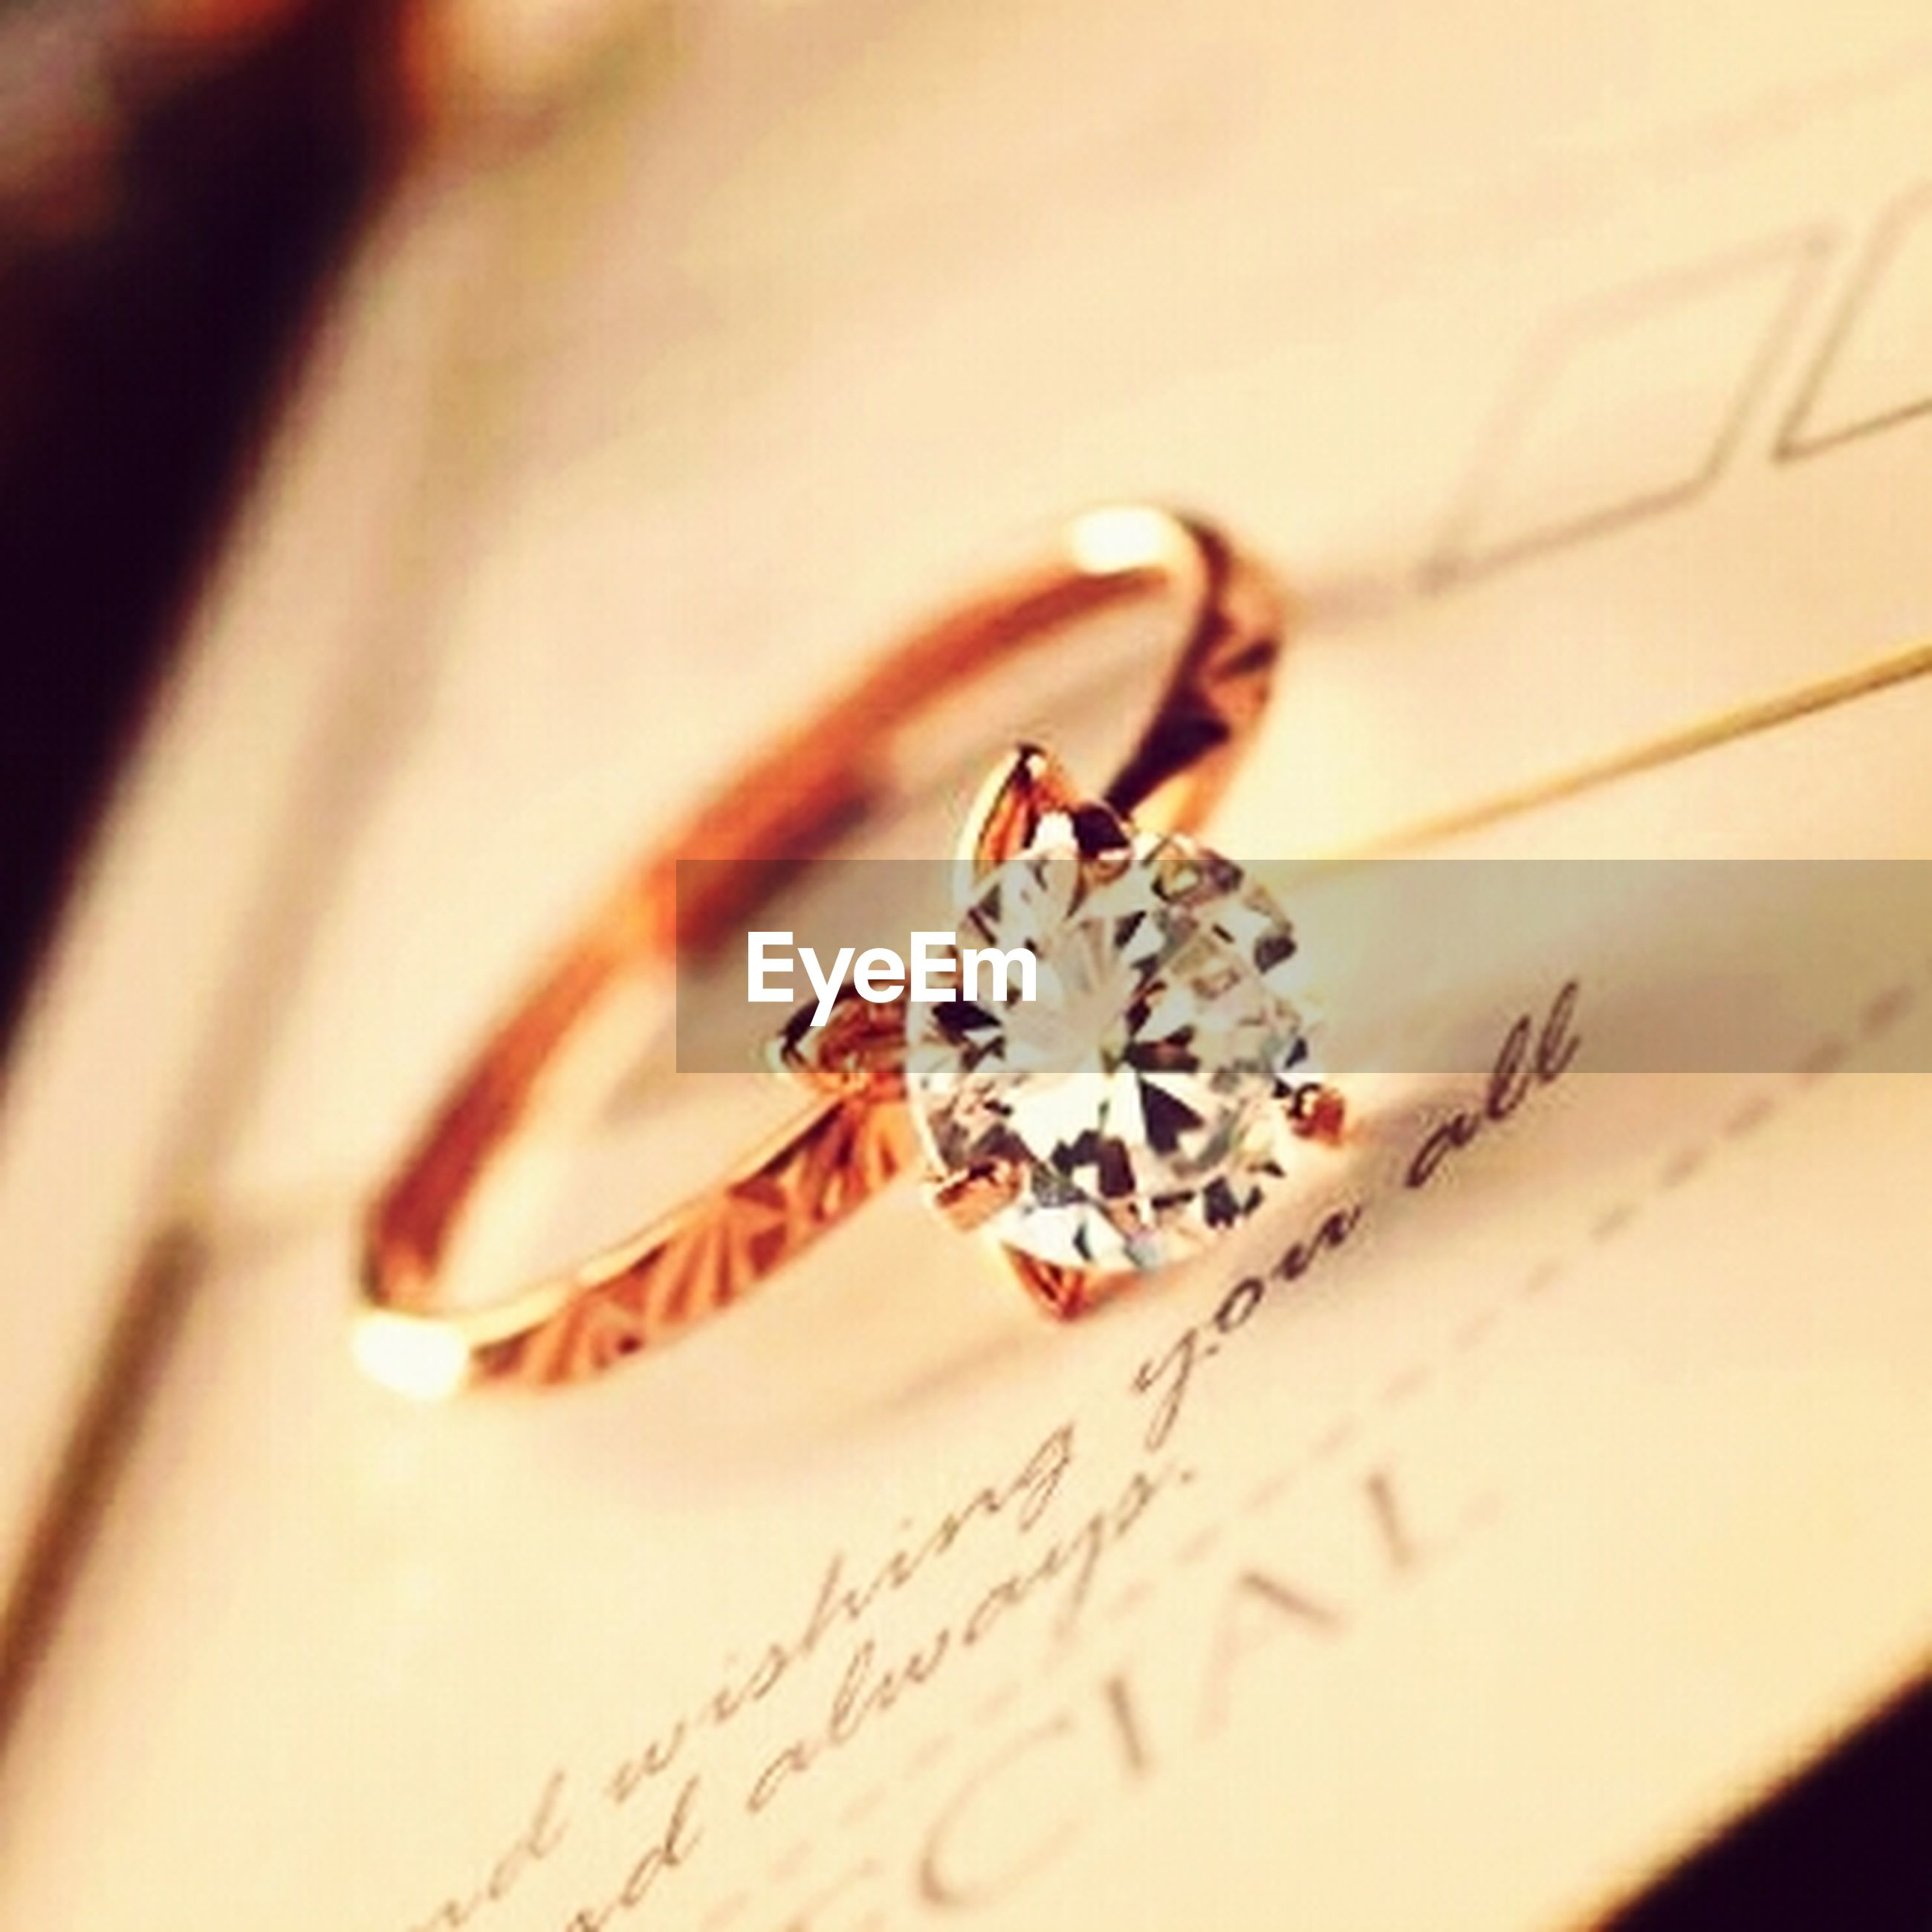 indoors, close-up, table, selective focus, person, focus on foreground, still life, art and craft, high angle view, creativity, text, art, jewelry, part of, paper, flower, decoration, cropped, western script, no people